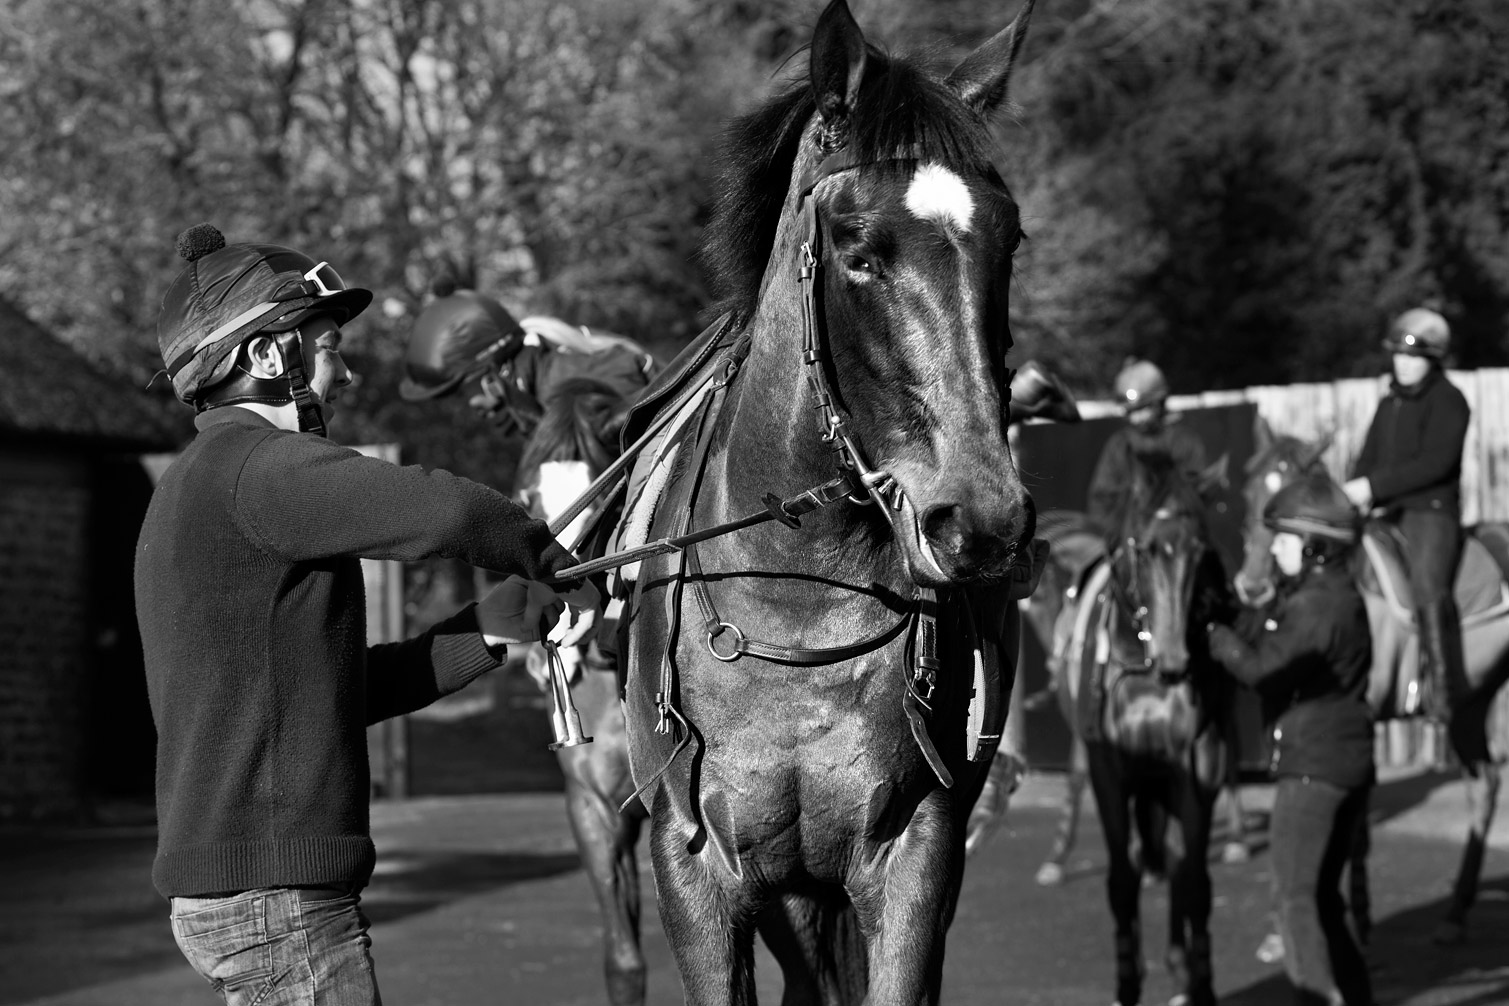 Returning-from-ride-with-yearlings-B-W